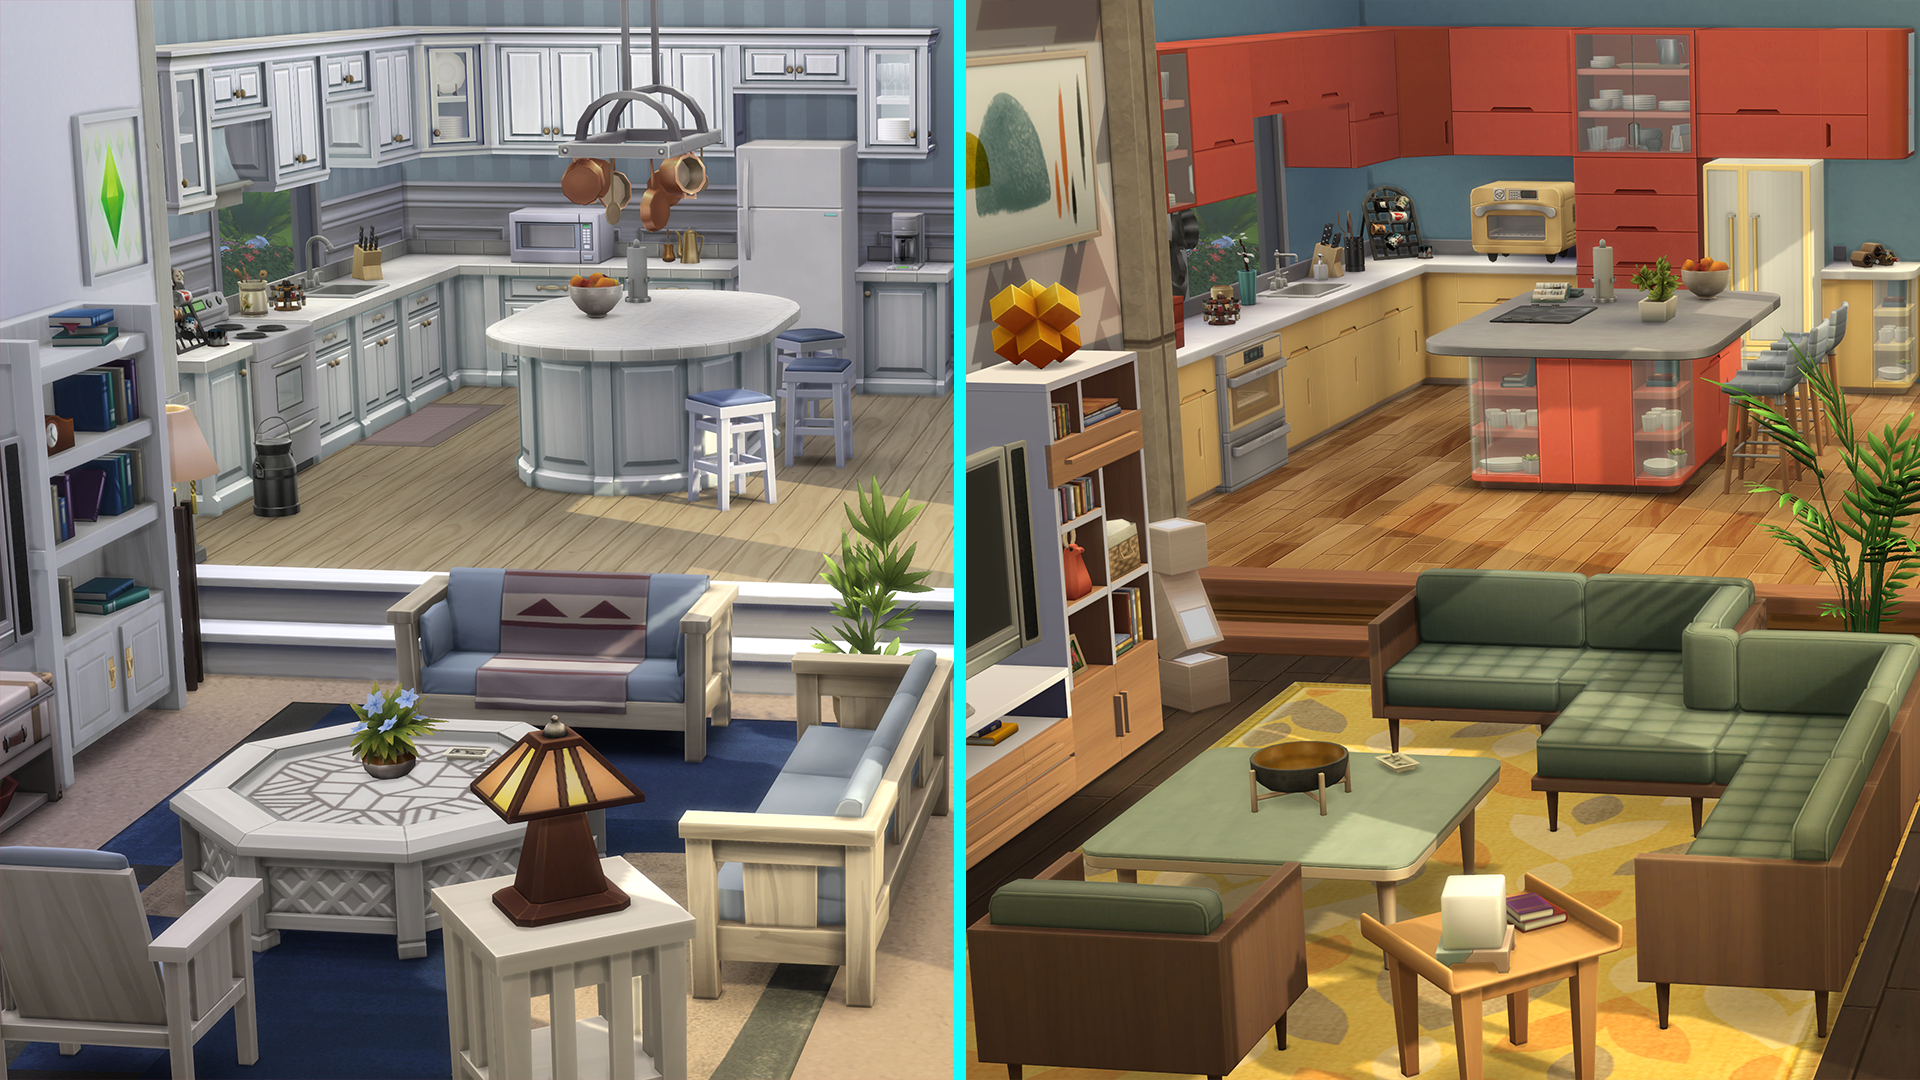 Die Sims 211 Traumhaftes Innendesign   Test/Review   game21gether